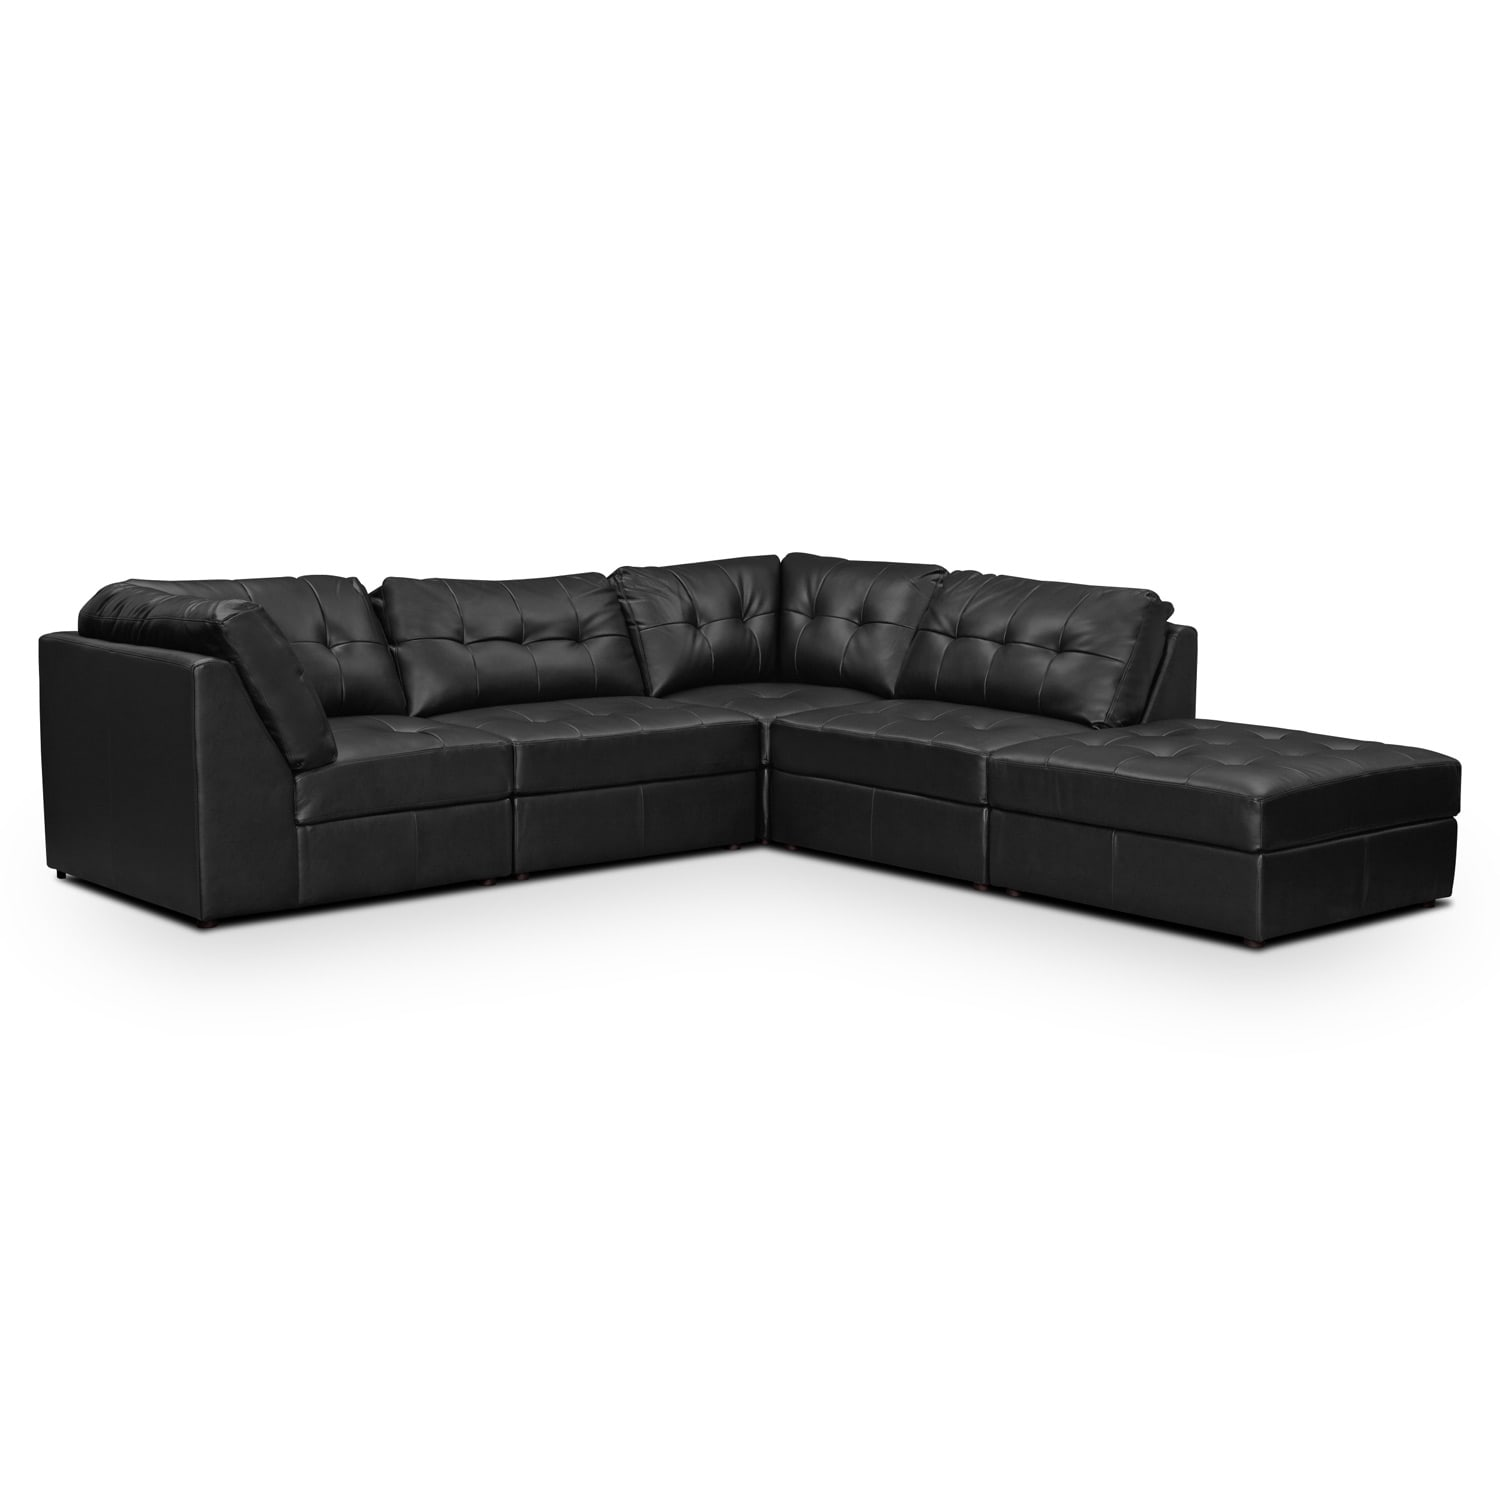 [Aventura 5 Pc. Sectional]